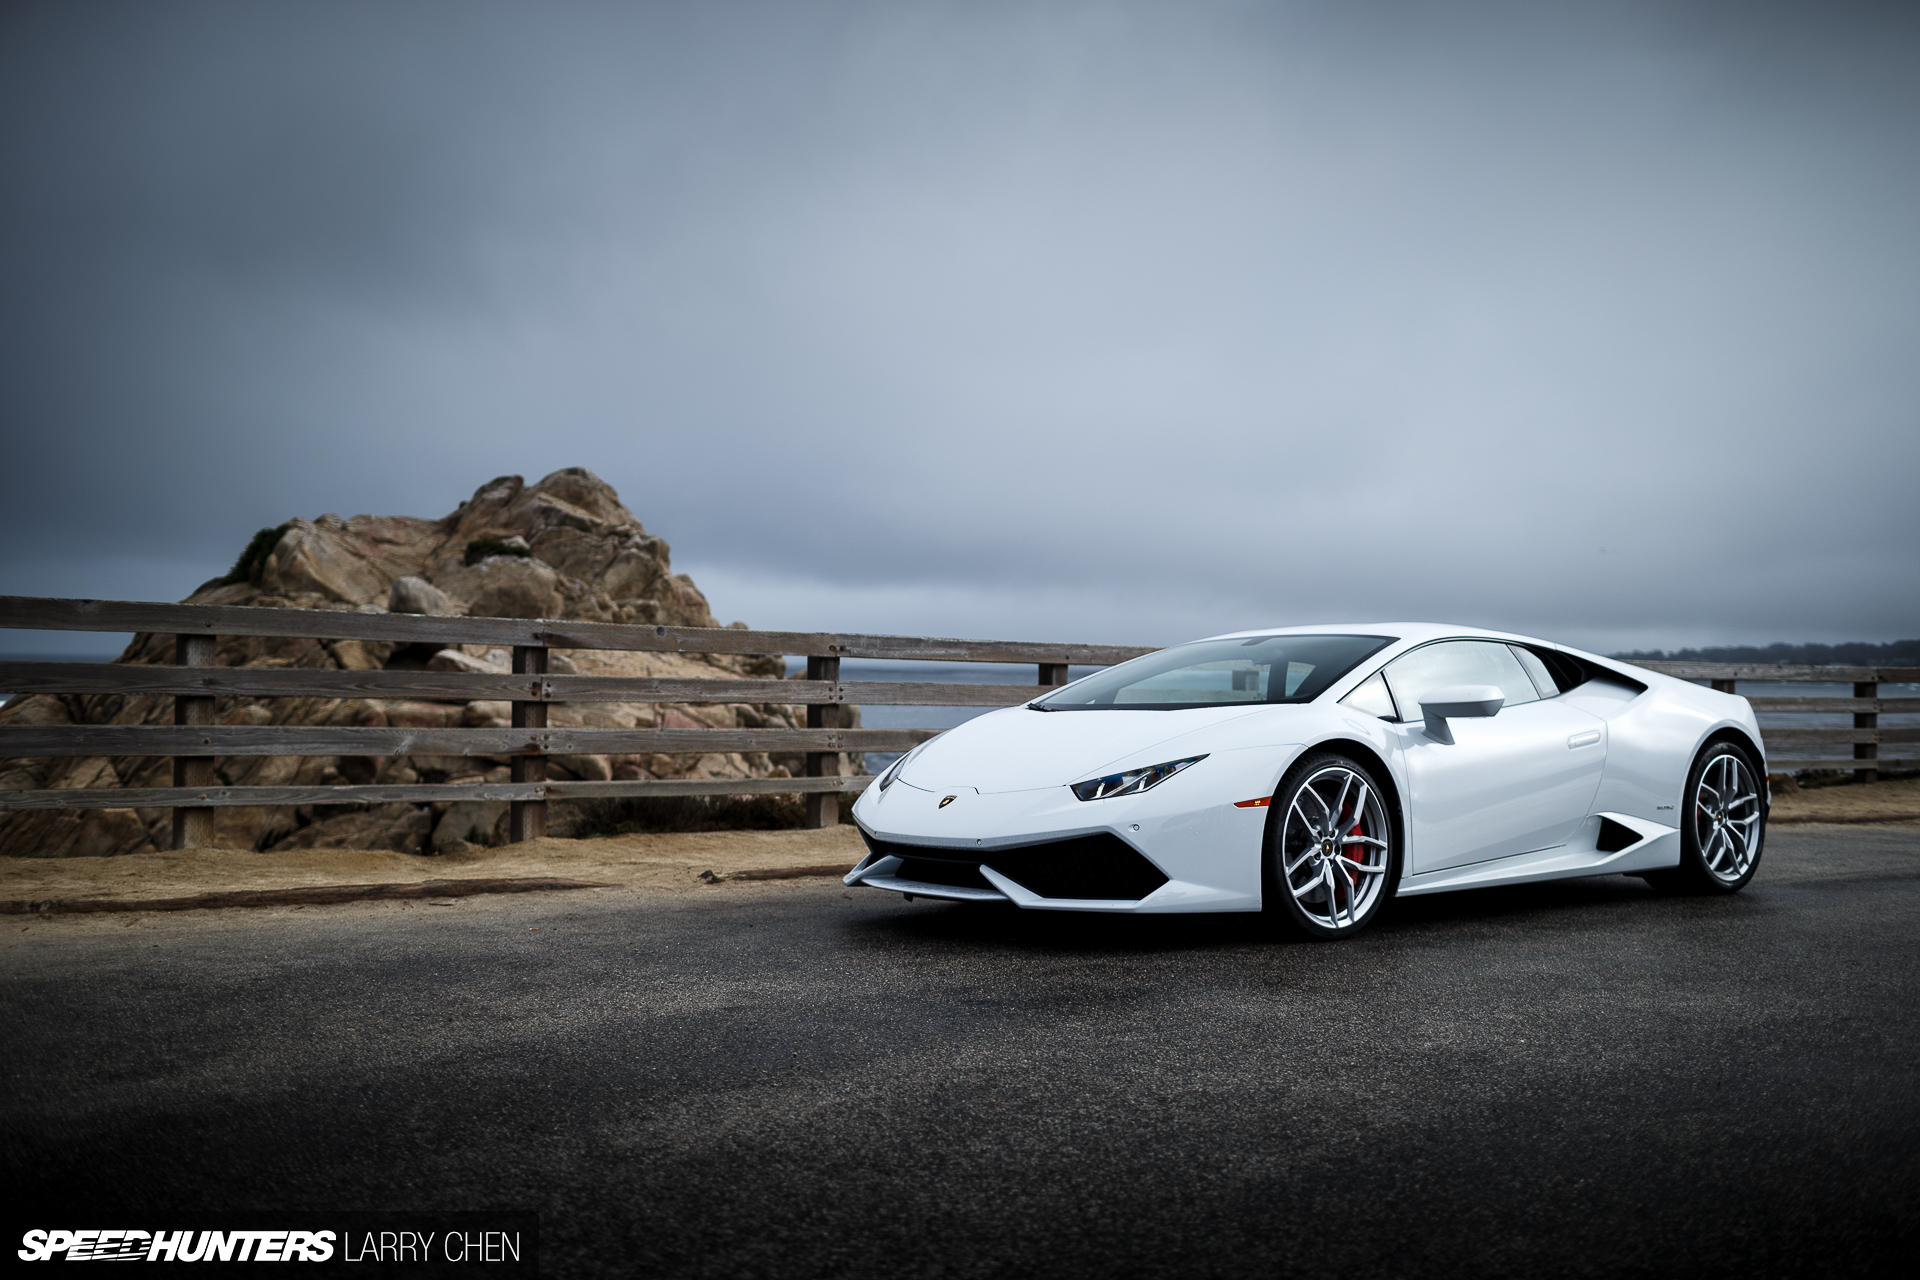 Larry_Chen_Speedhunters_lamborghini_huracan-1 Fabulous Lamborghini Huracan Need for Speed 2015 Cars Trend